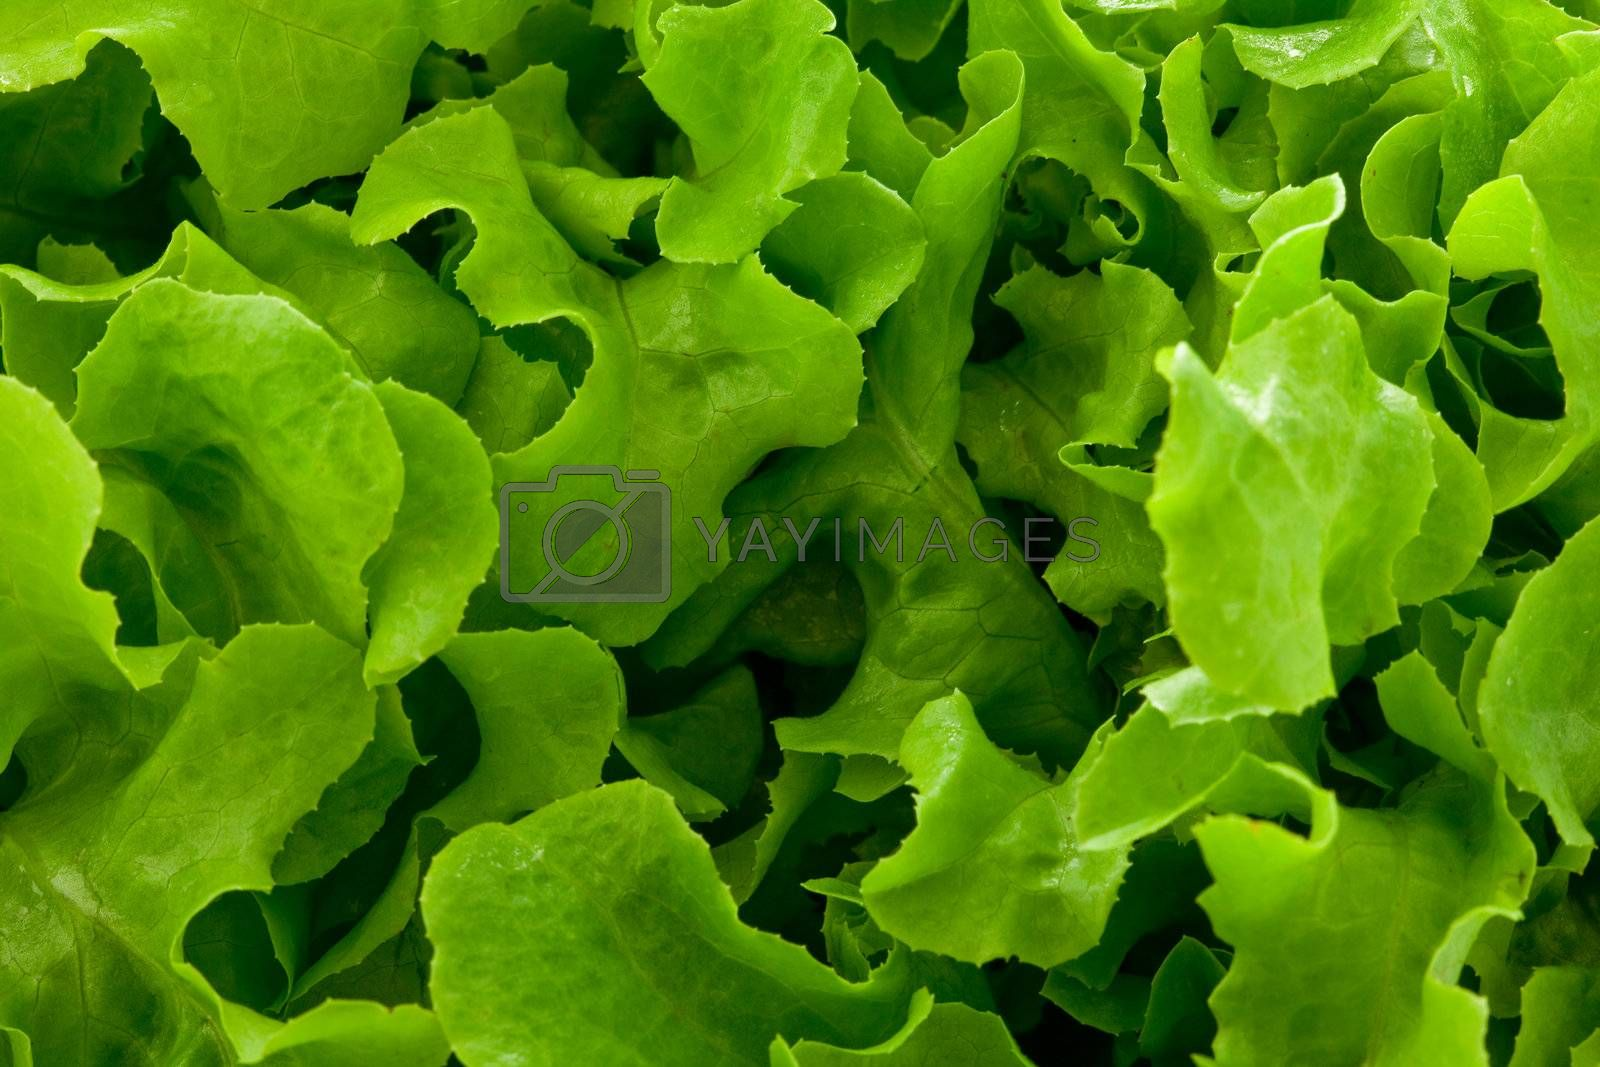 photo of a delicious fresh green salad pattern background